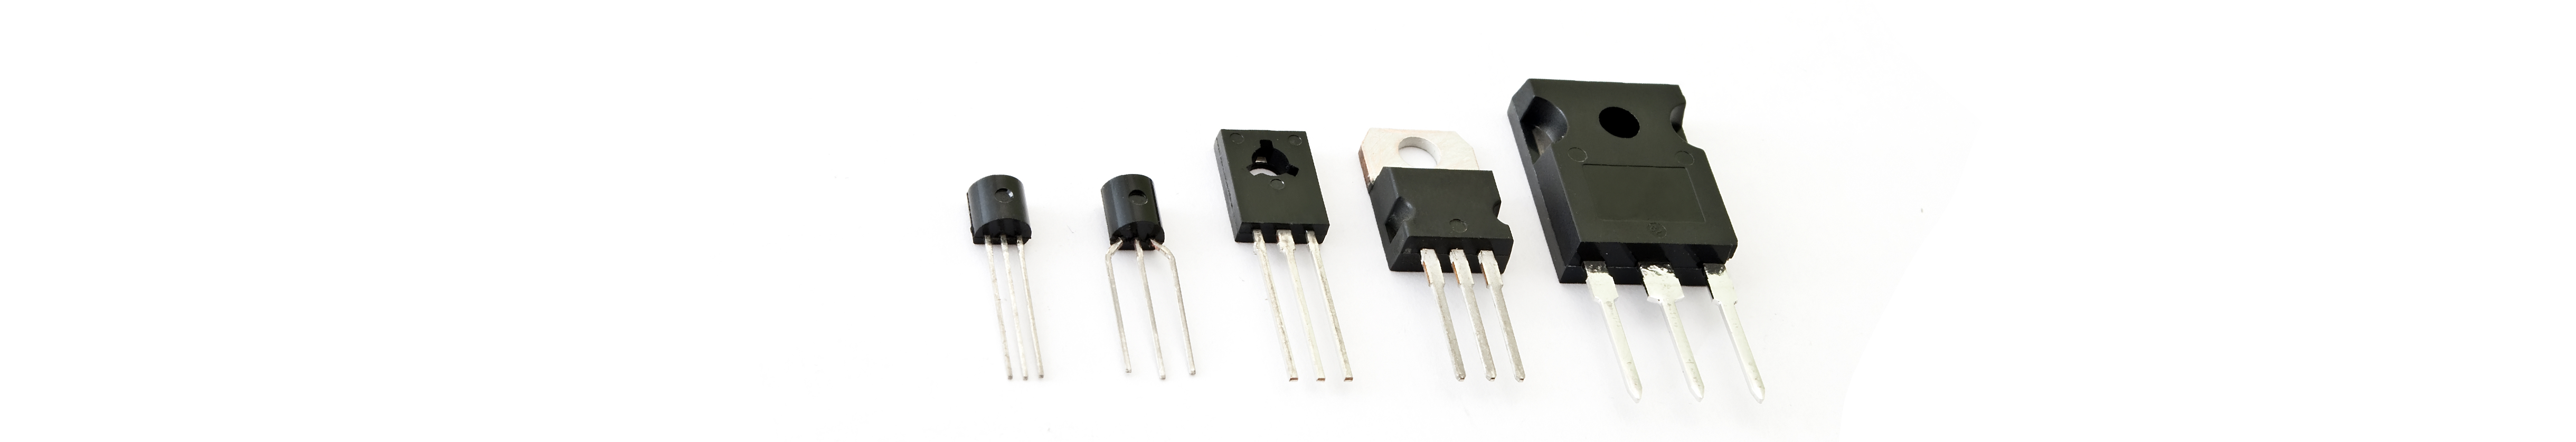 Metal Oxide Semiconductor FETS